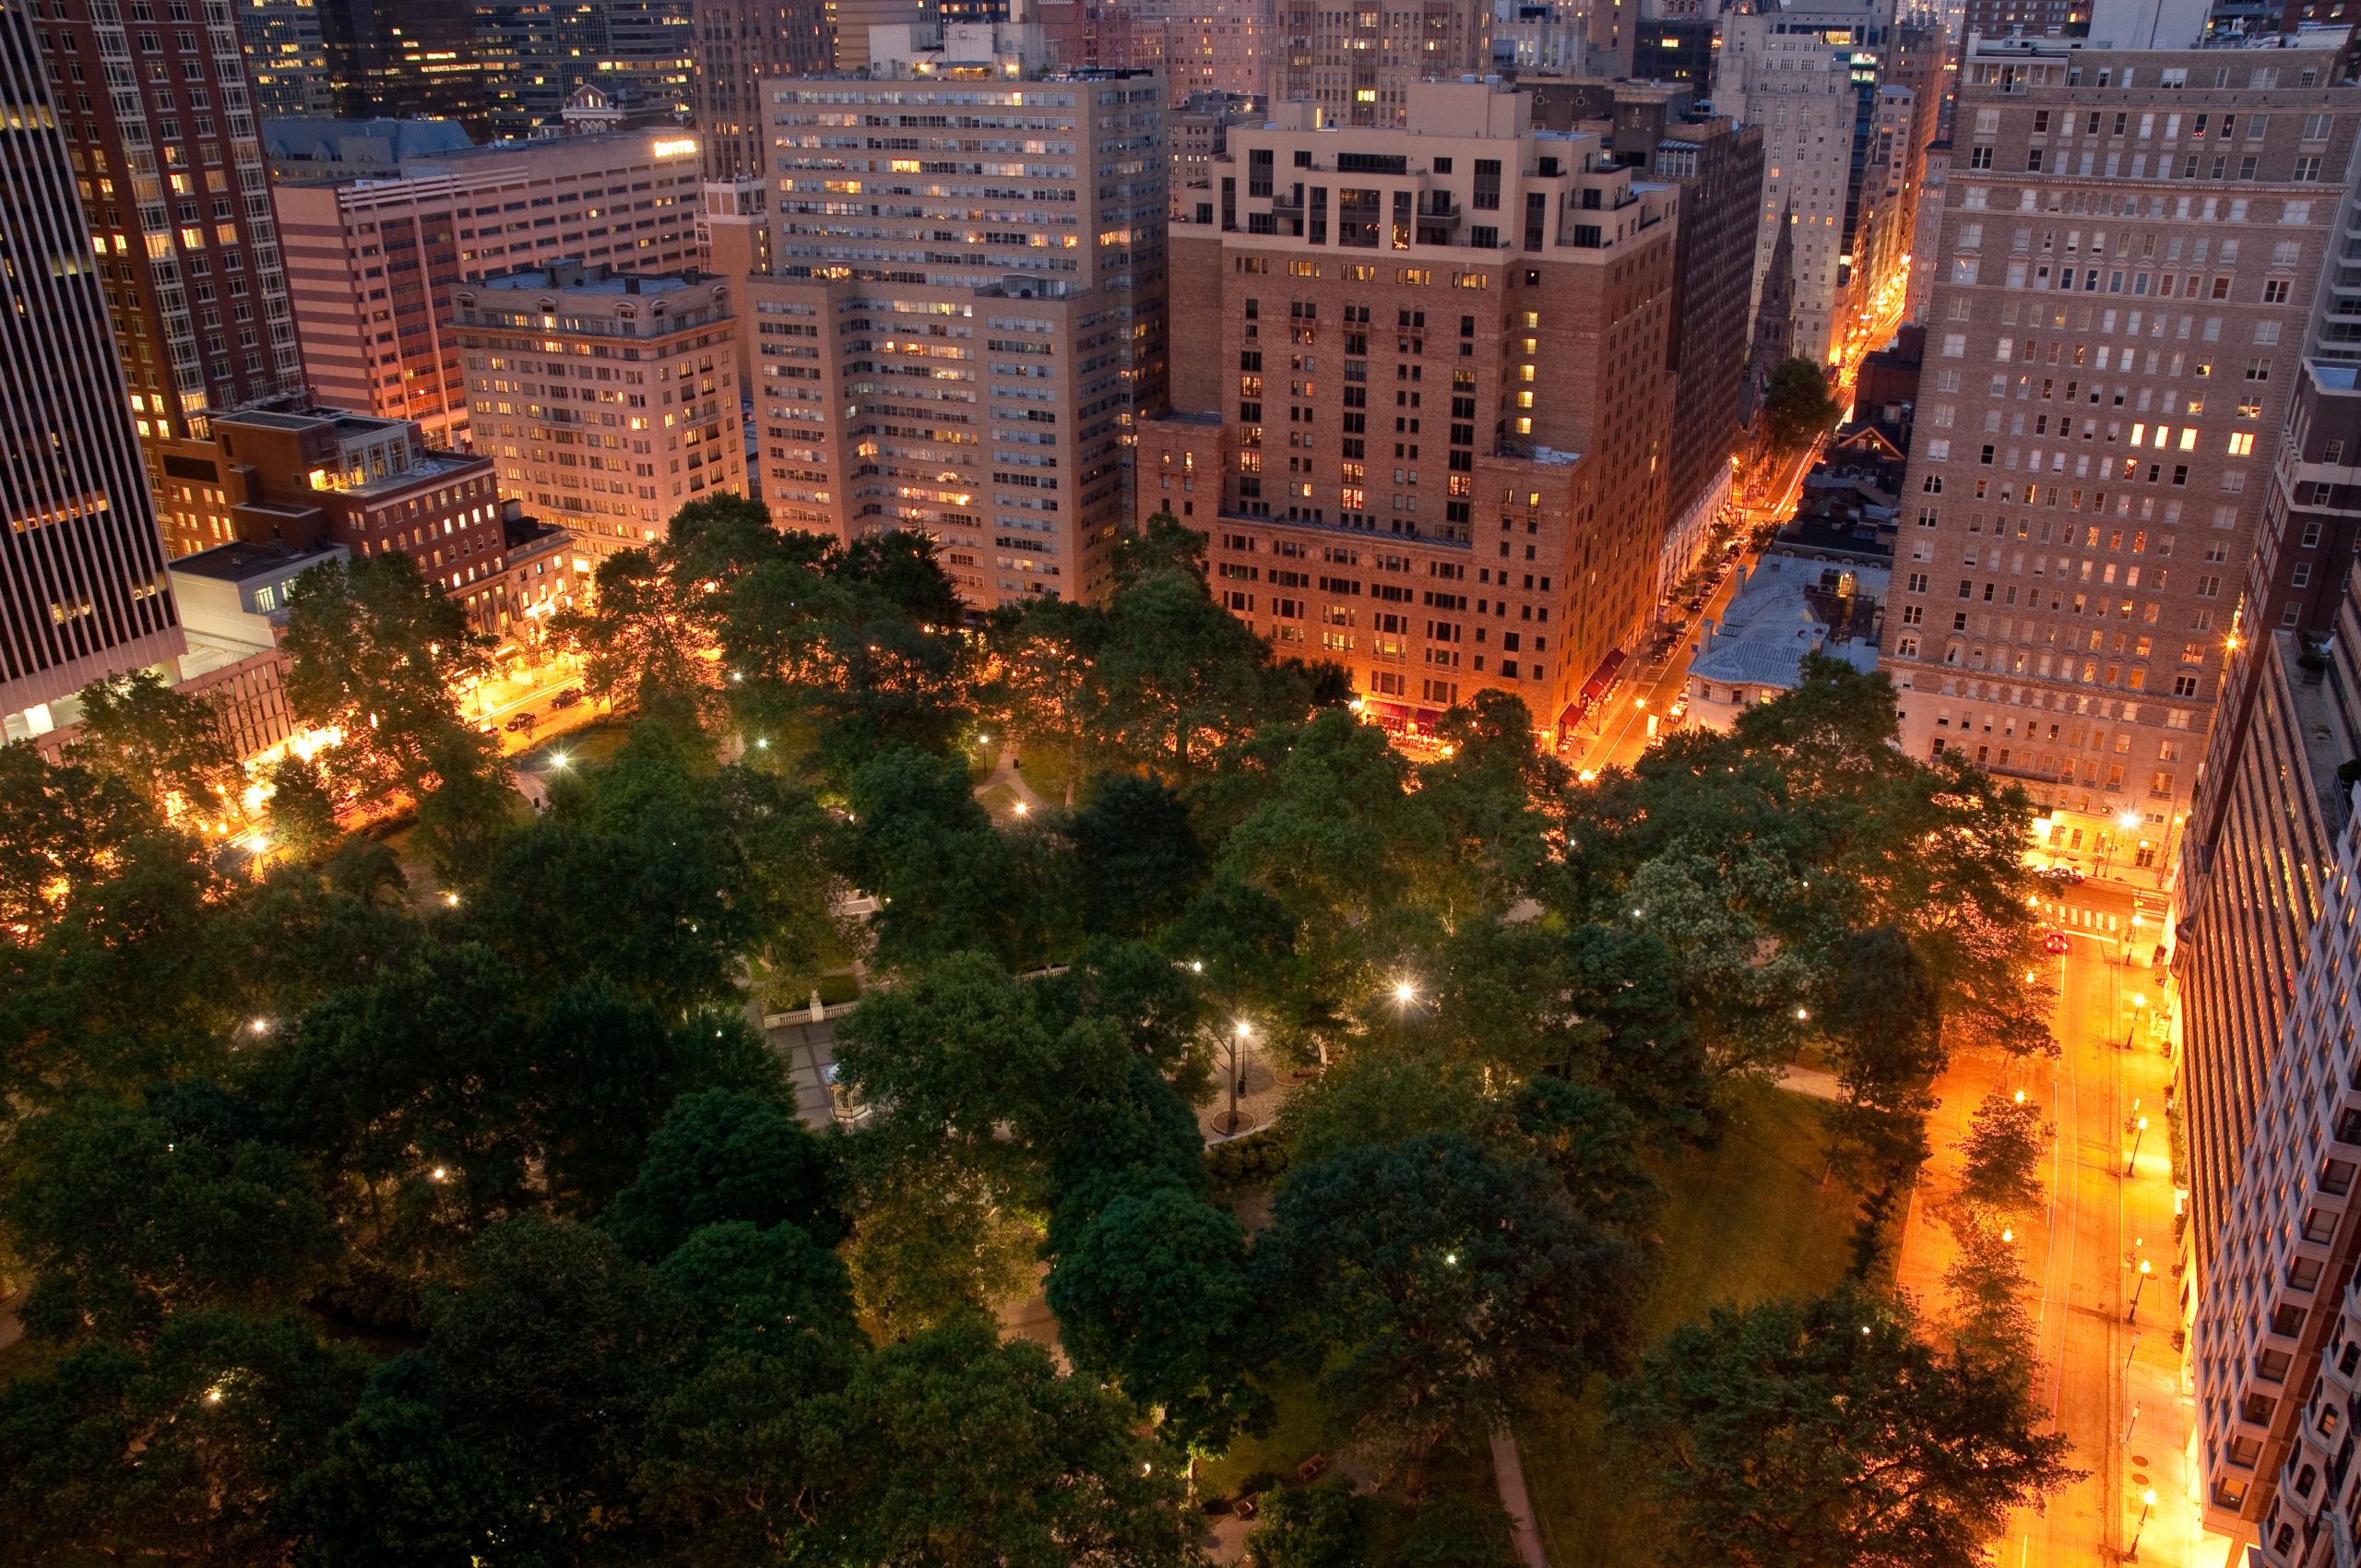 Rittenhouse Square at night photo by bklphoto.com for PHLCVB